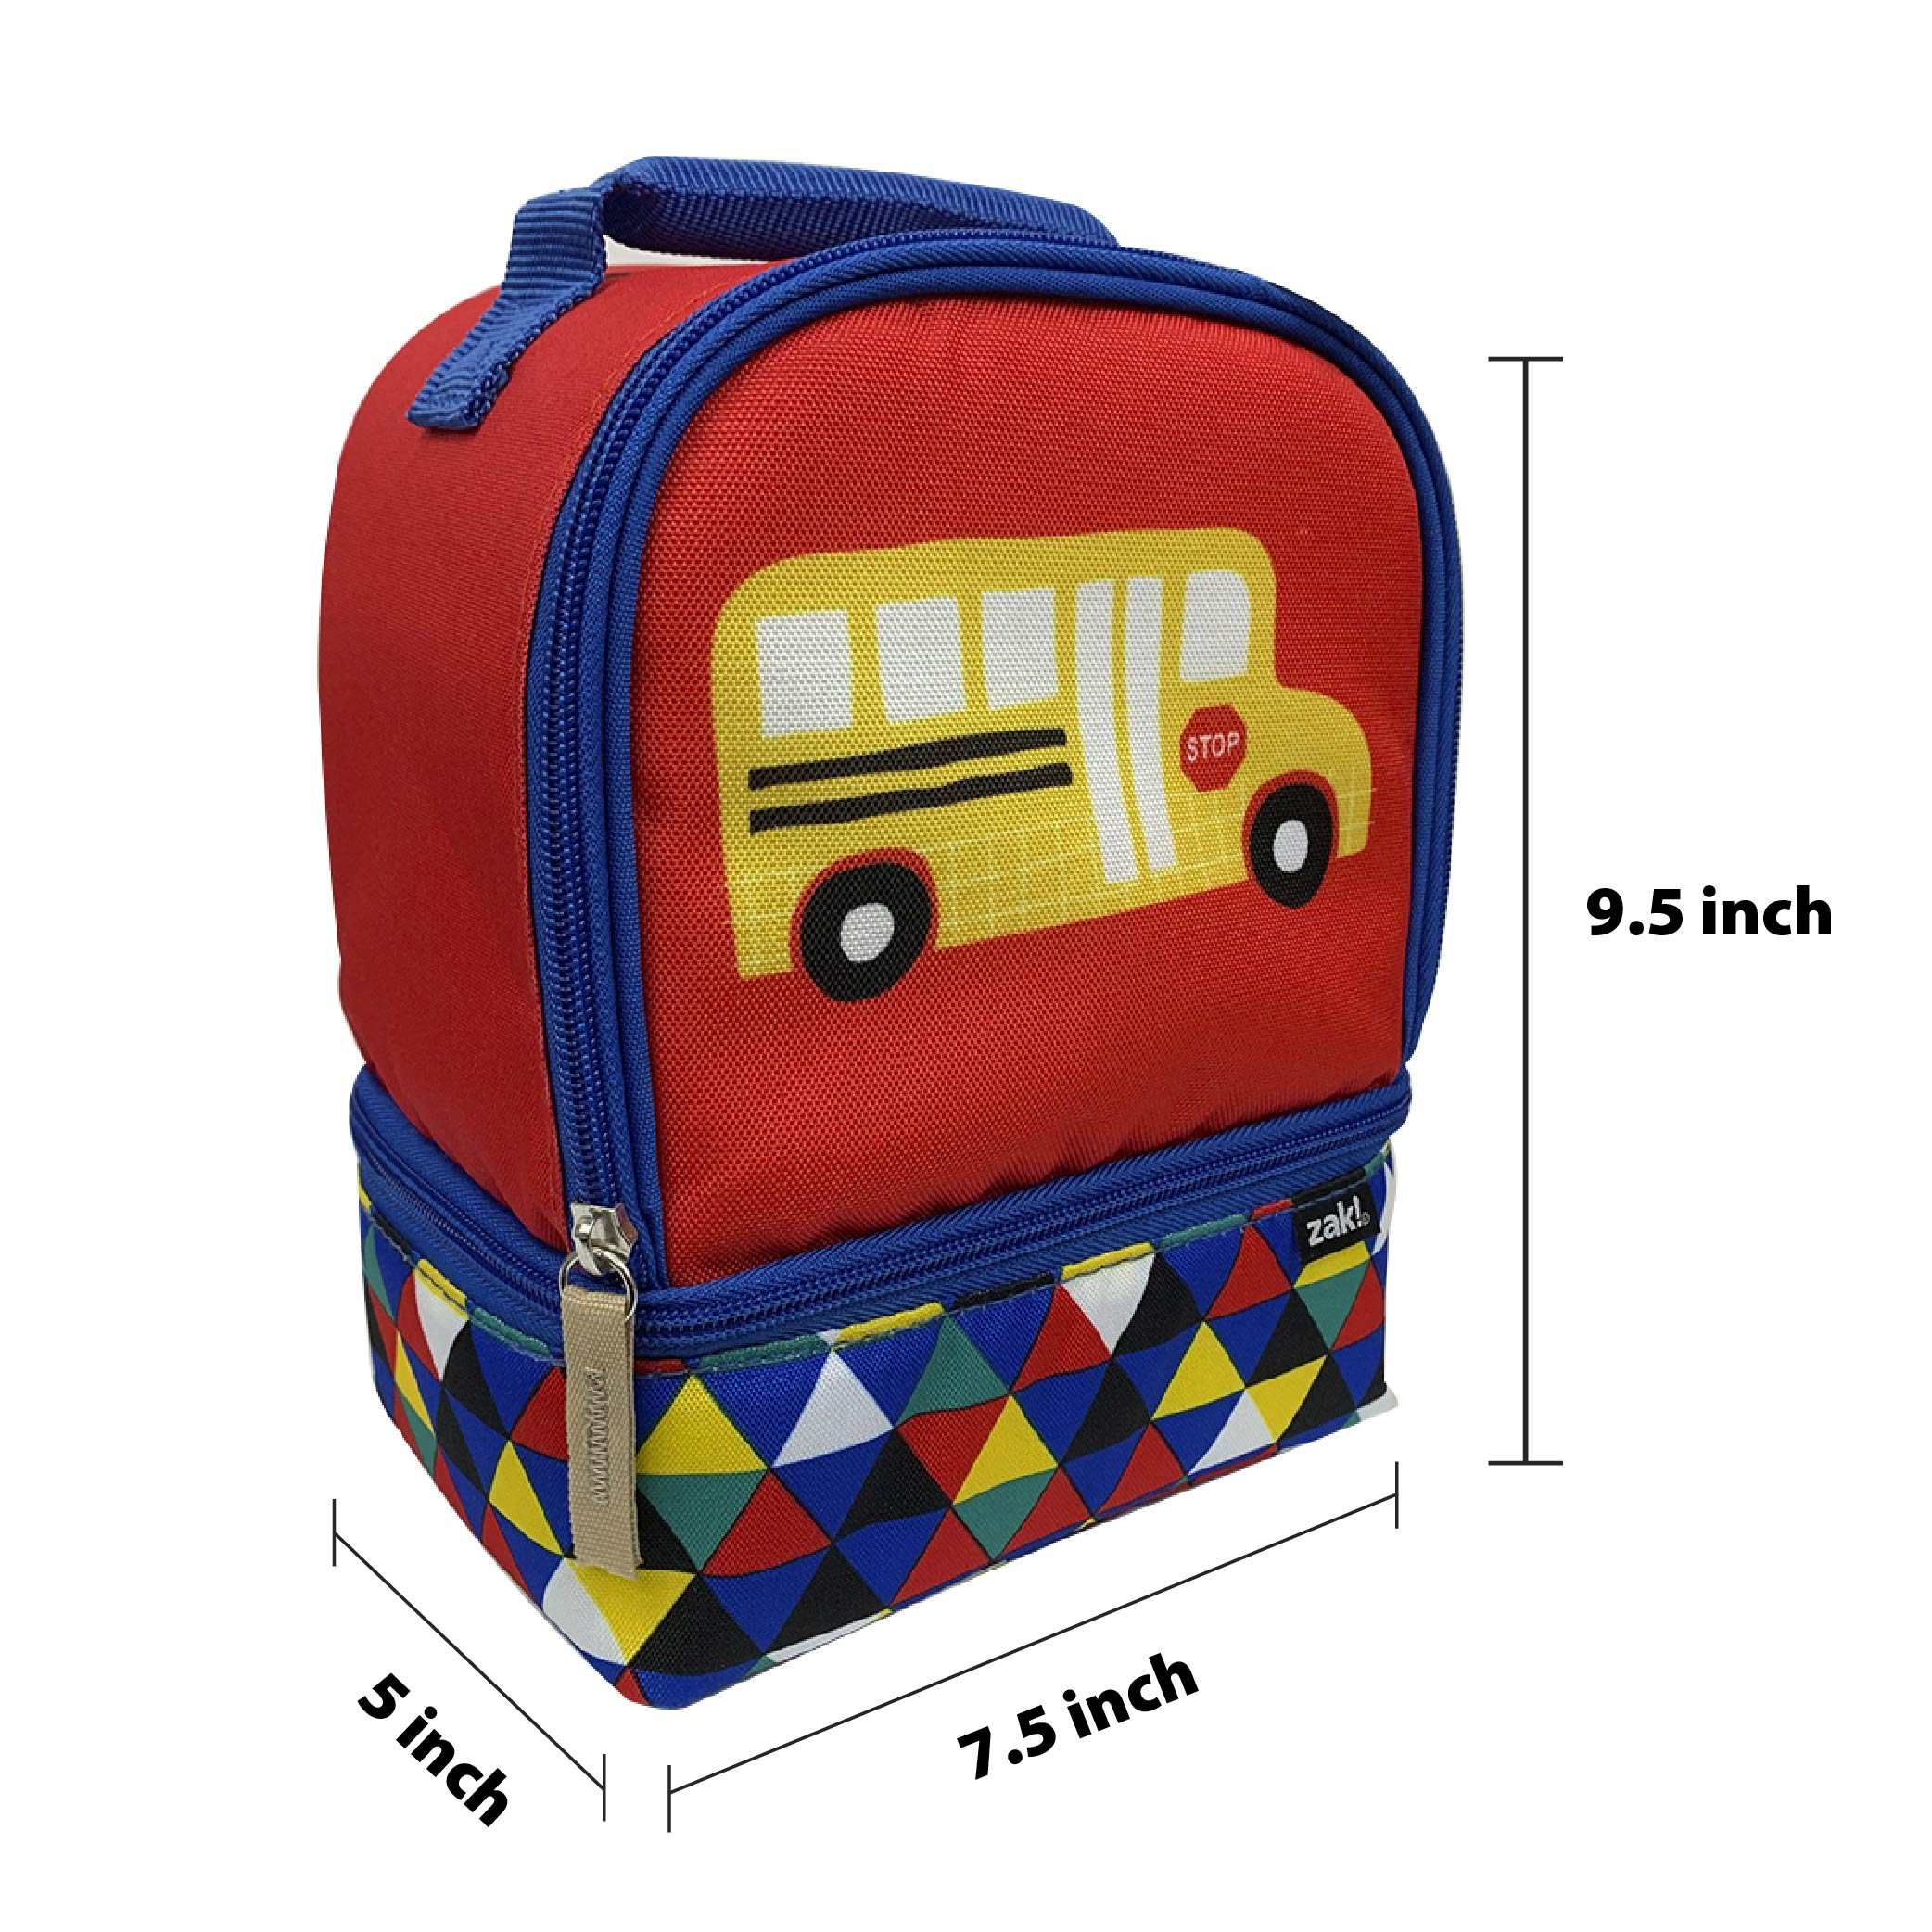 Grid Lock 2-compartment Reusable Insulated Lunch Bag, Buses slideshow image 4